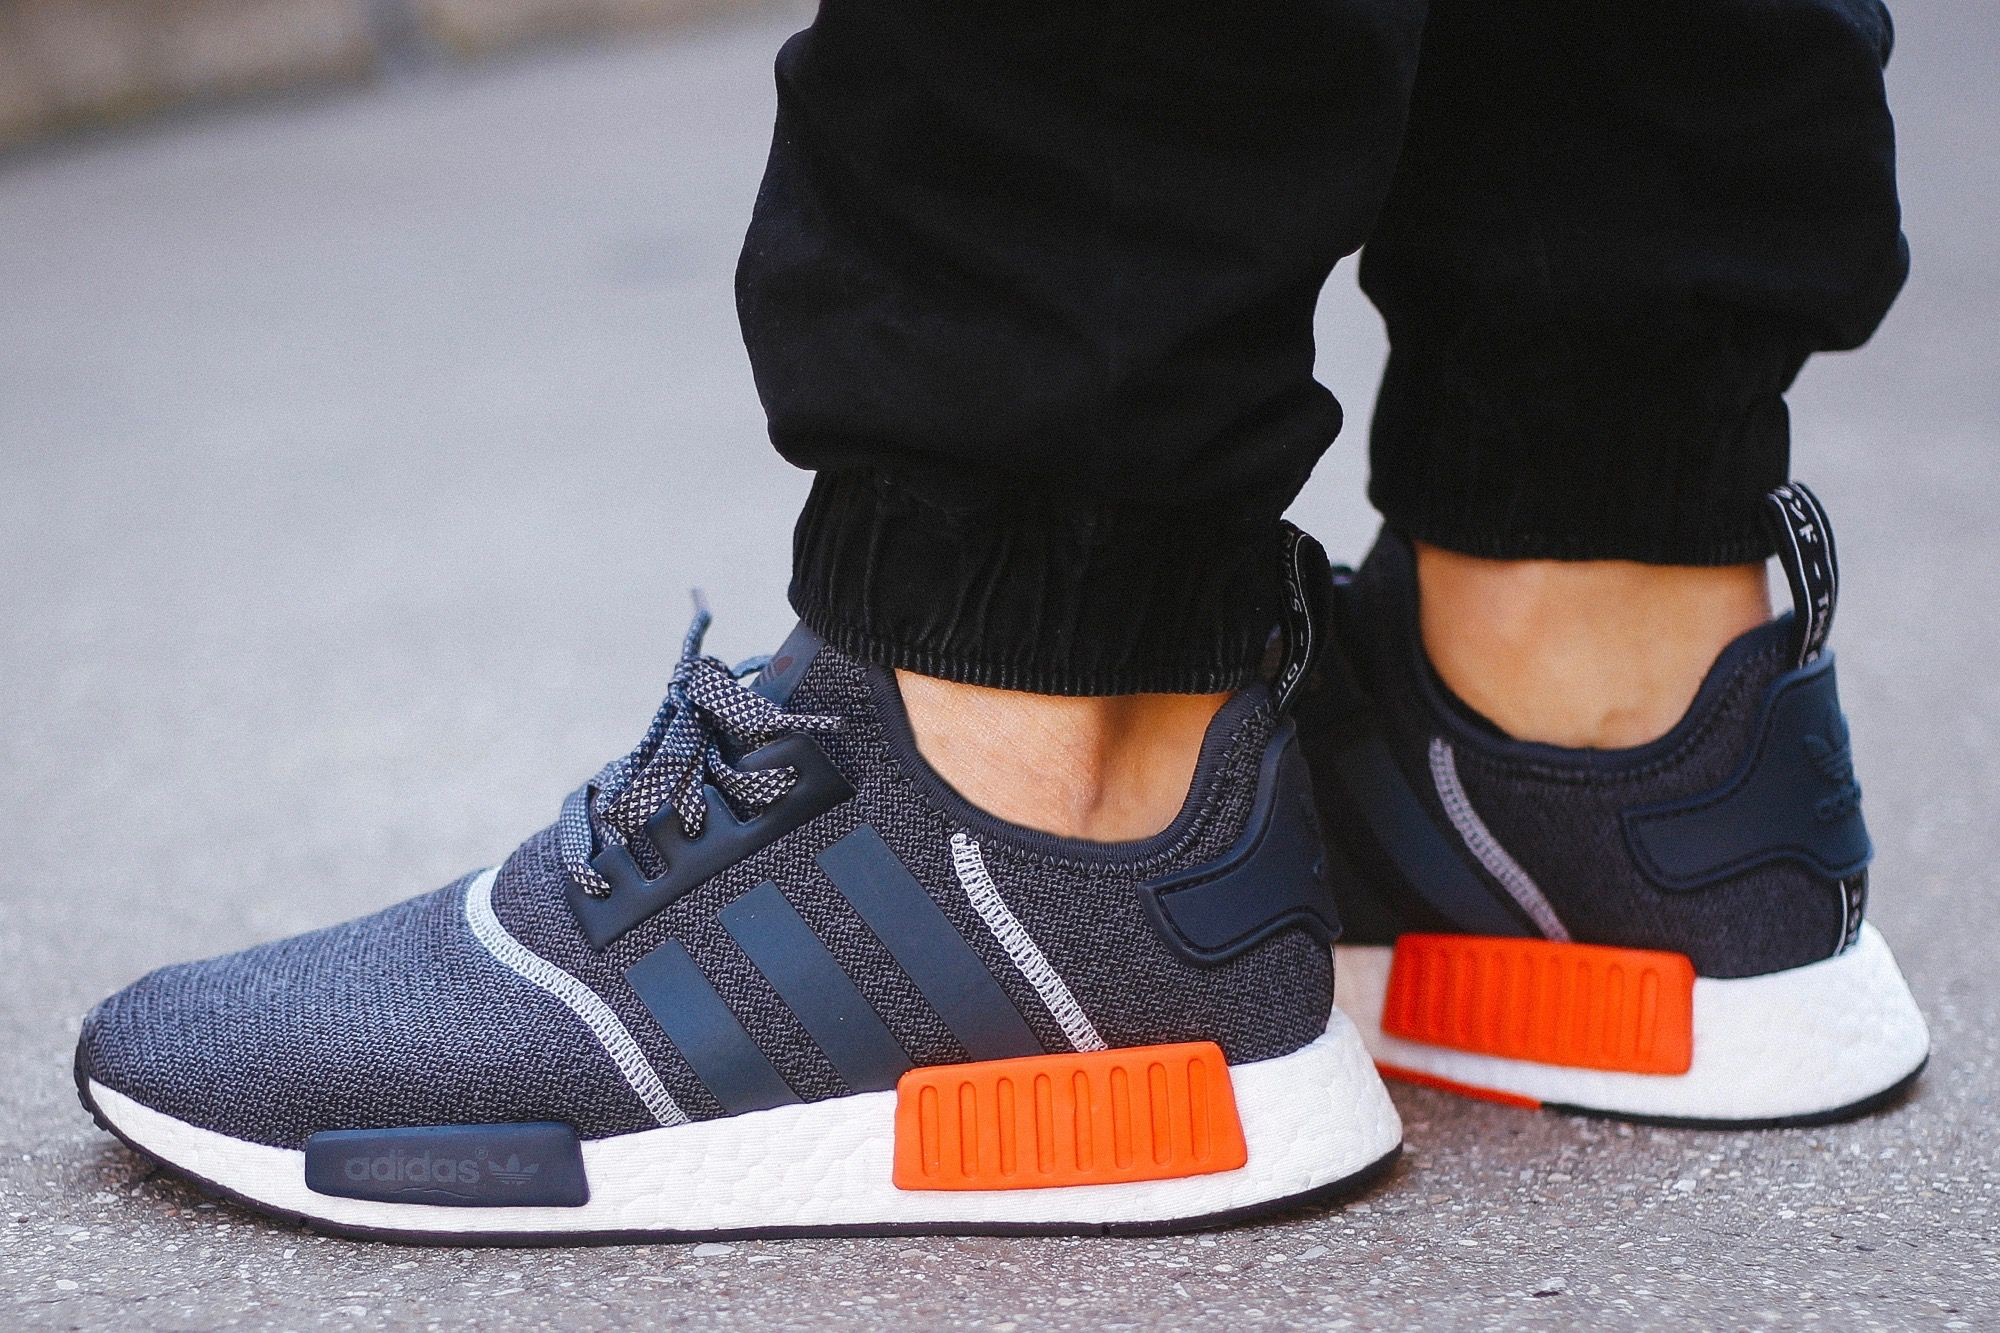 designer fashion 9a9ed 22fb6 adidas NMD R1 & XR1 On-foot Preview via BSTN Store ...